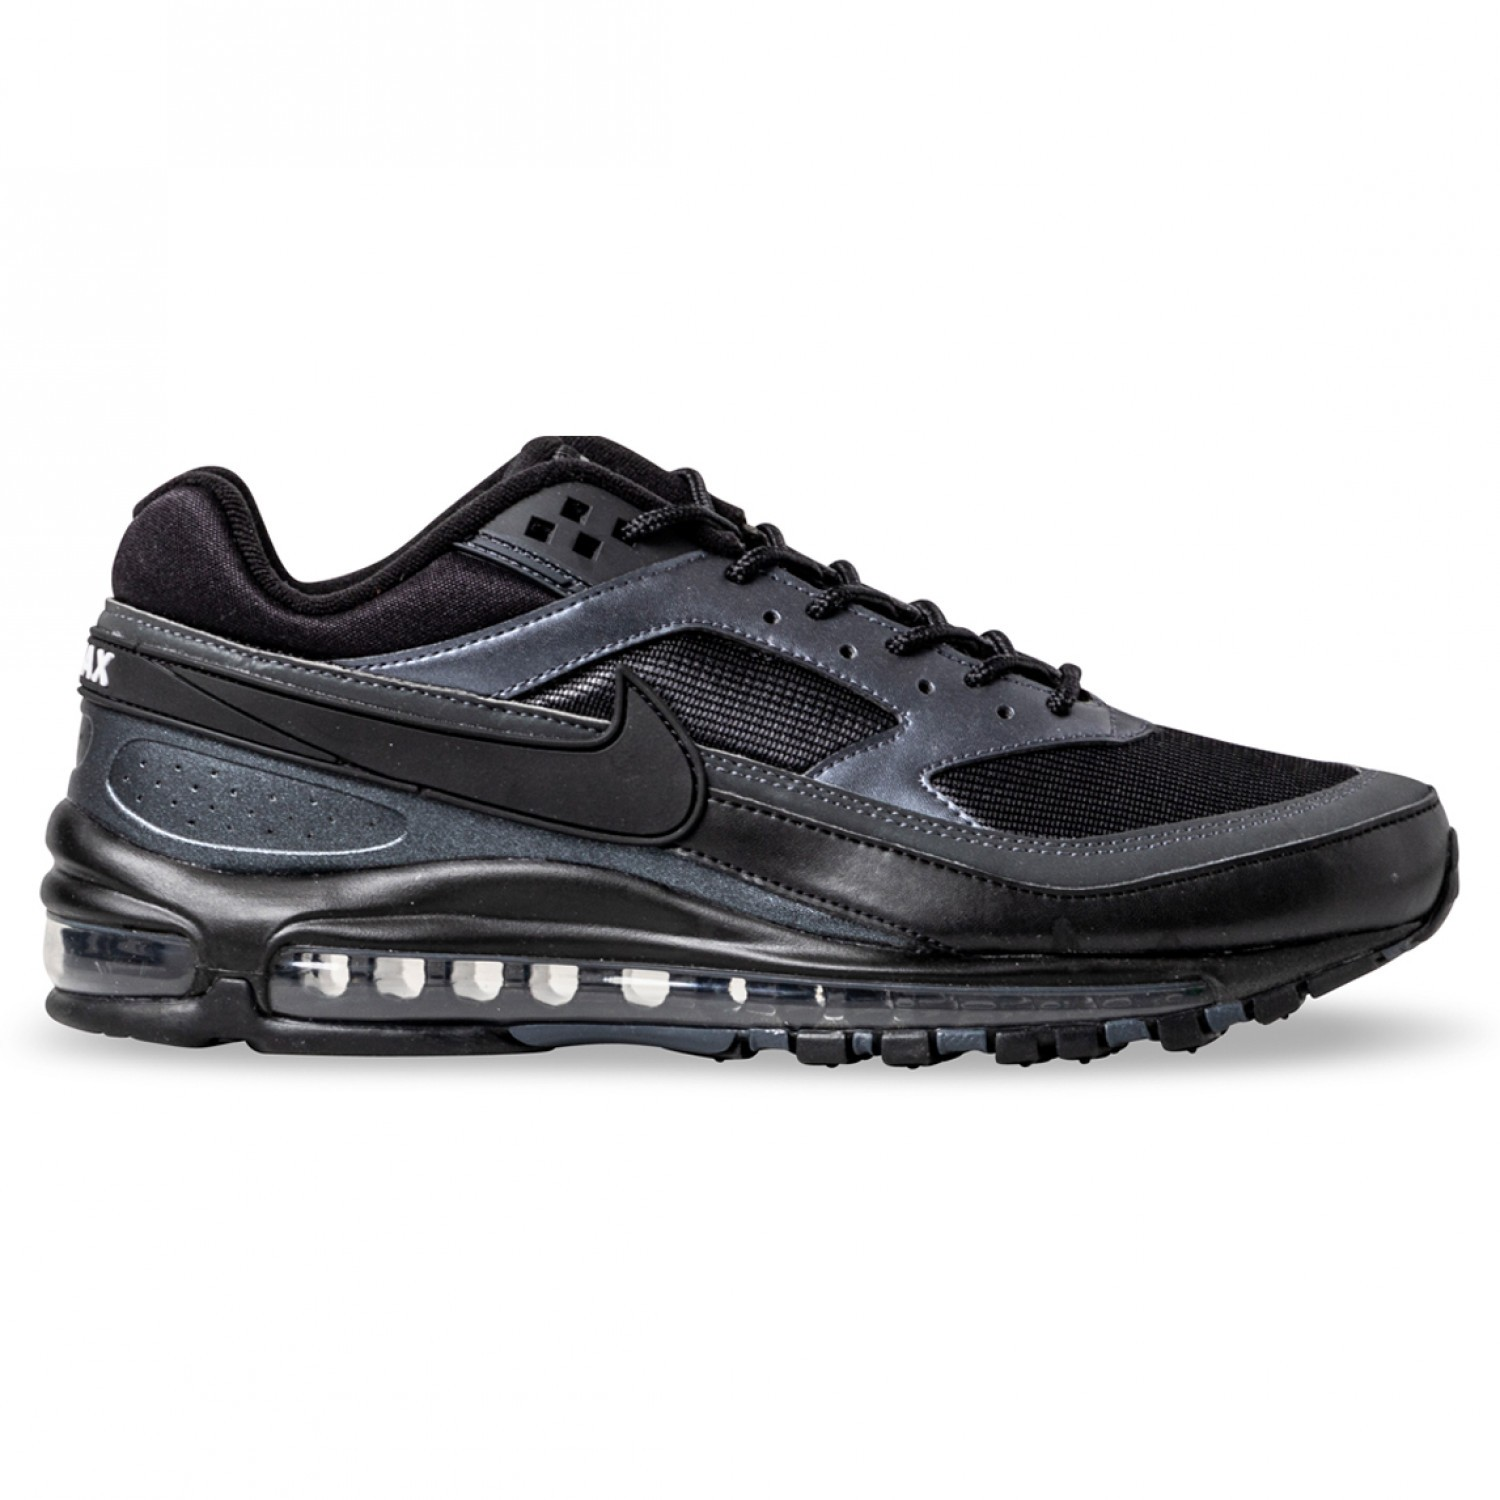 Nike Air Max 97 BW 'Black Hematite' | AO2406 001